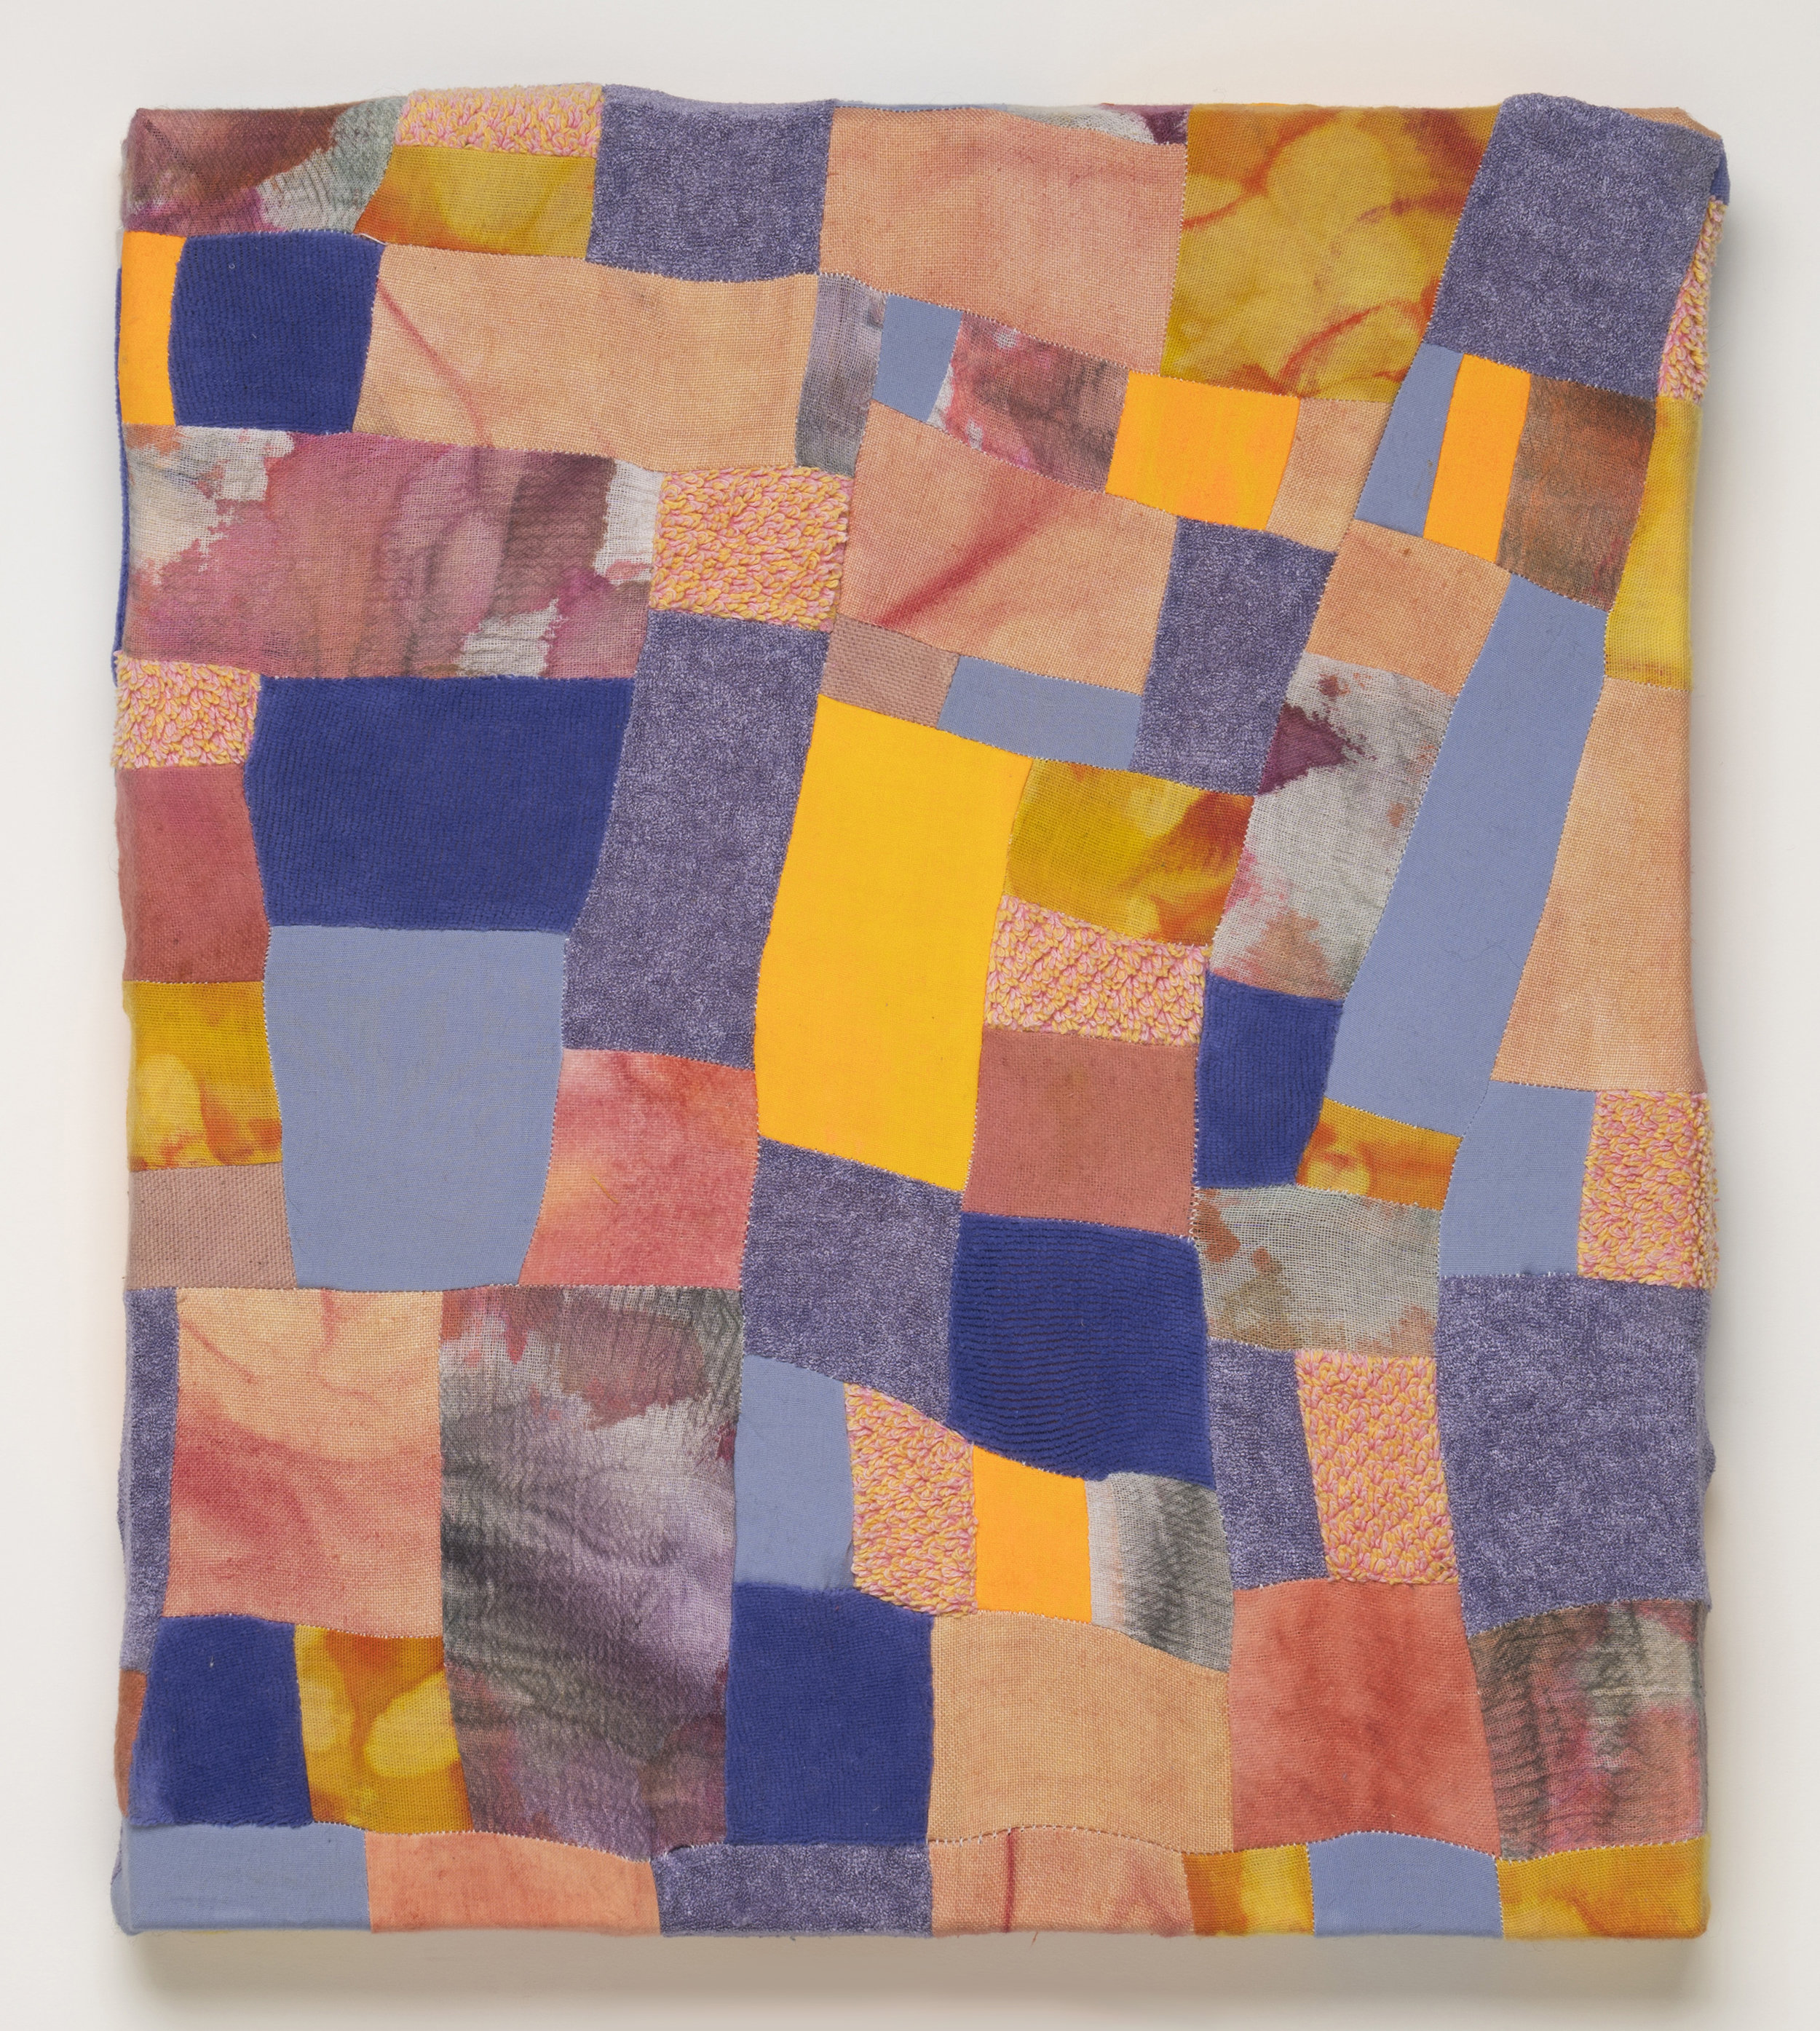 """2017, Rosy-Fingered, Cotton fabric, turmeric, cochineal, madder, dye, acrylic paint, terrycloth, velour, synthetic fabric, 12"""" x 14"""""""